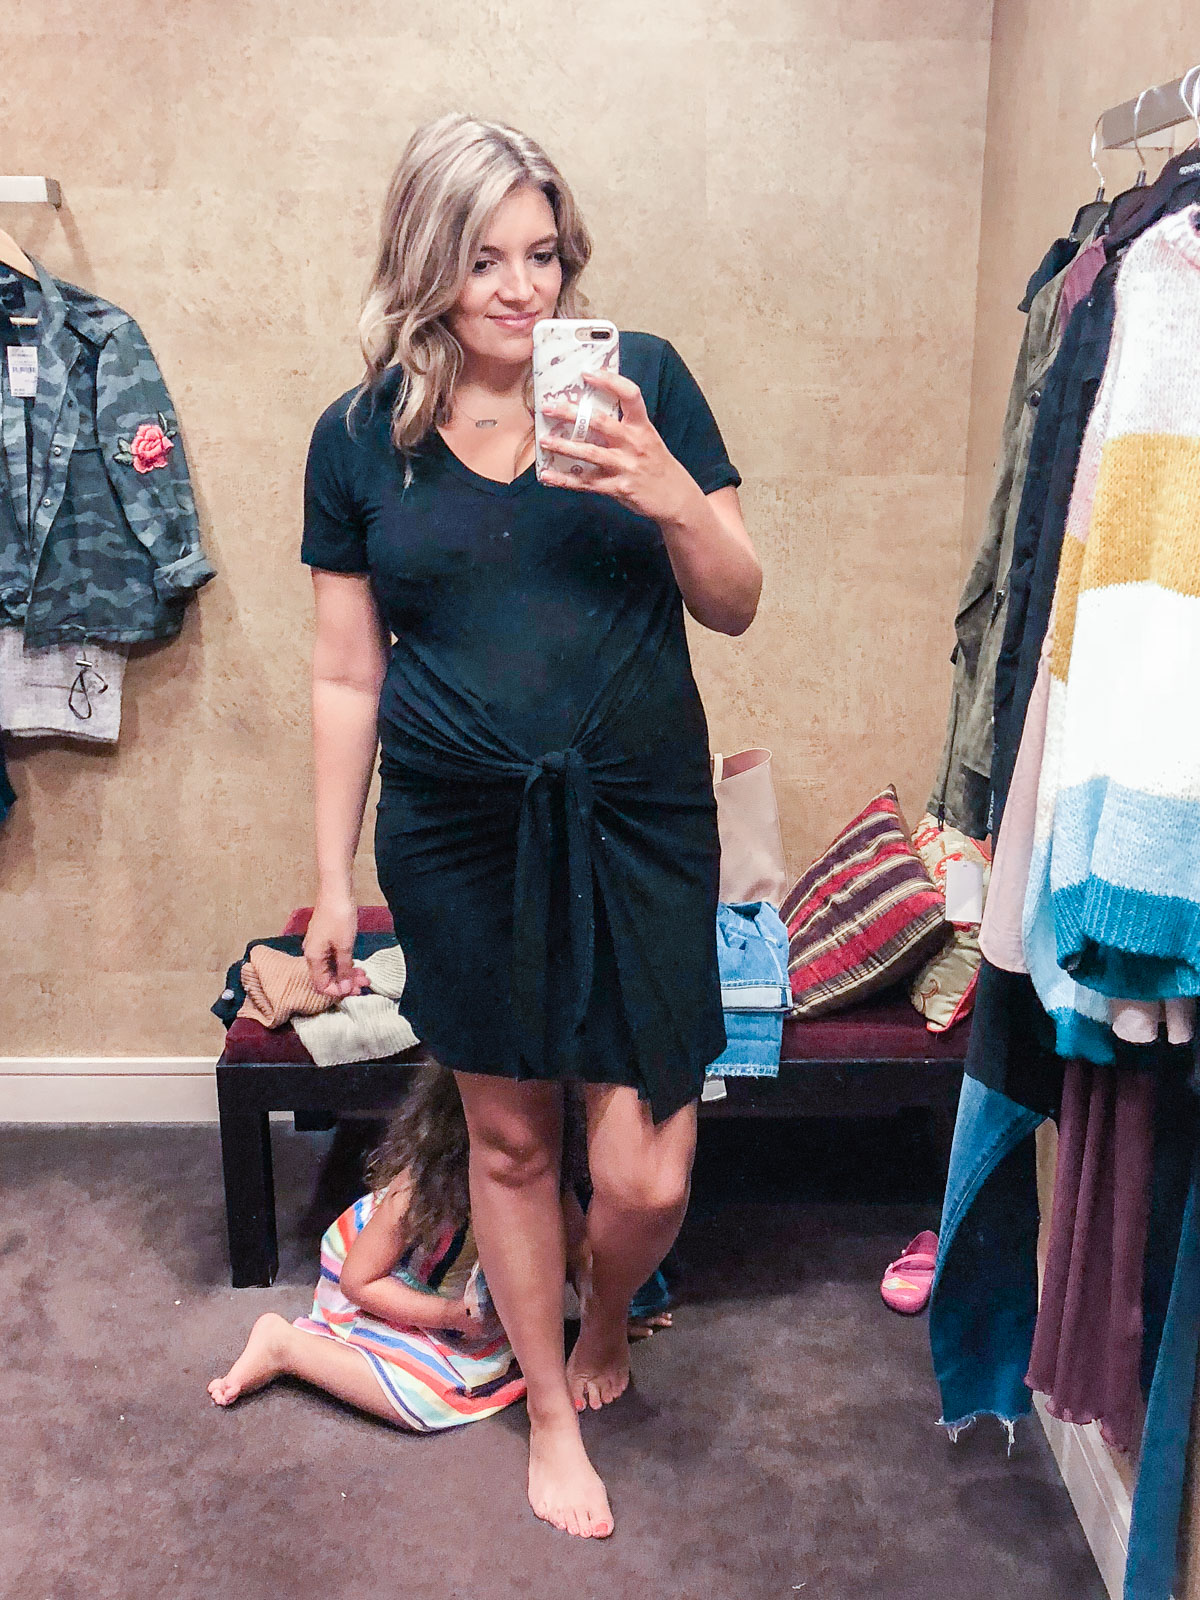 knot-waist dress - Nordstrom anniversary sale 2018 try-on session: over 25 items reviewed for fit and size! | bylaurenm.com